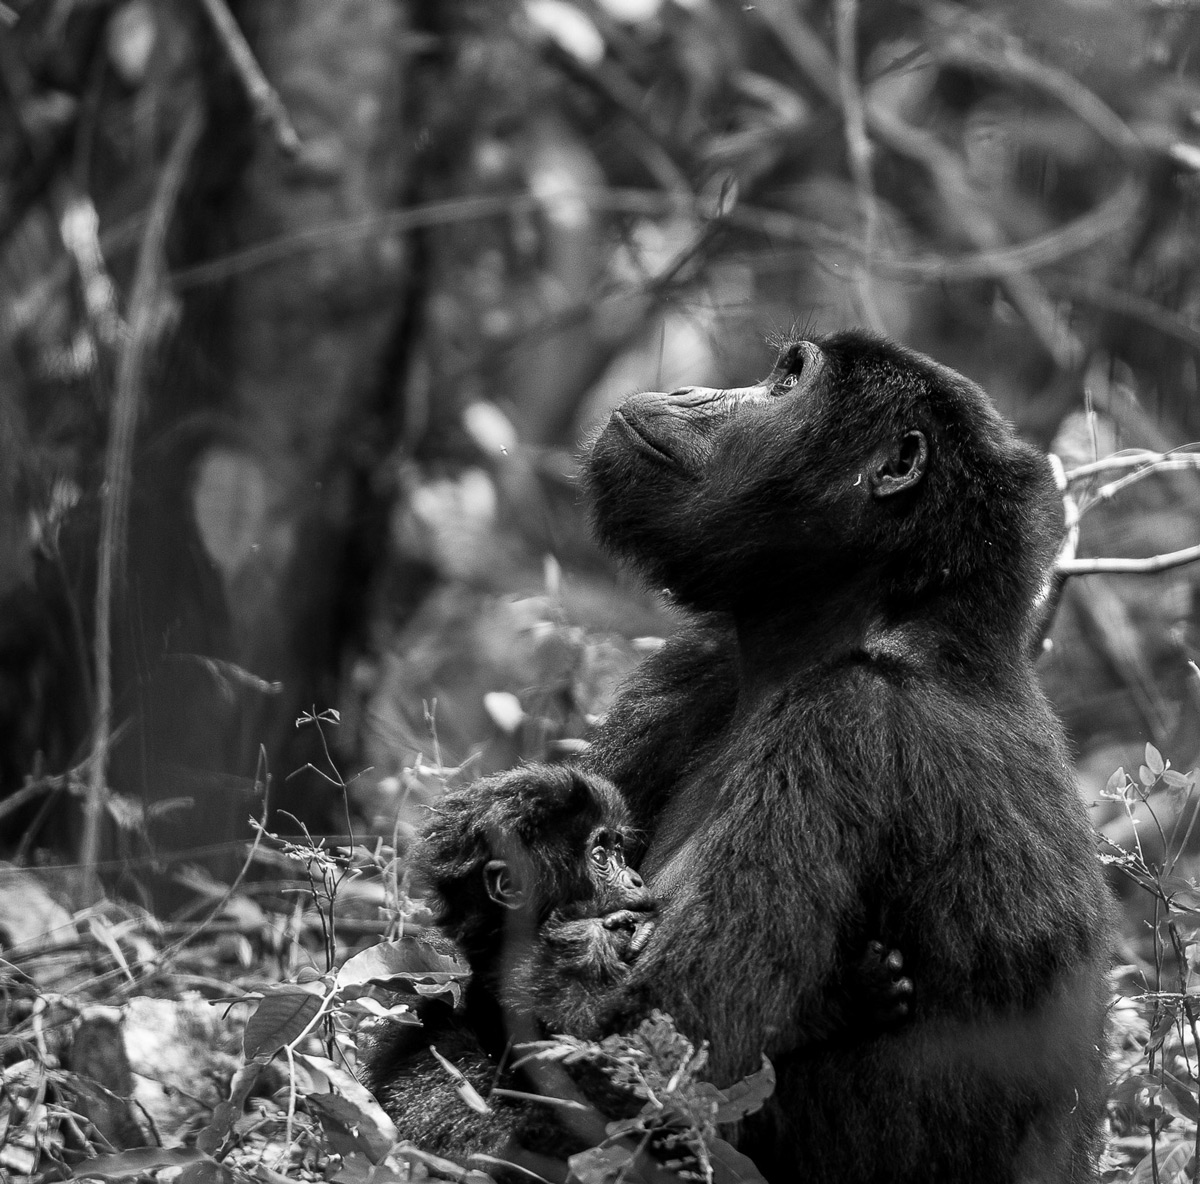 """A moment of thought"" – Bwindi Impenetrable National Park, Uganda © Dalida Innes"